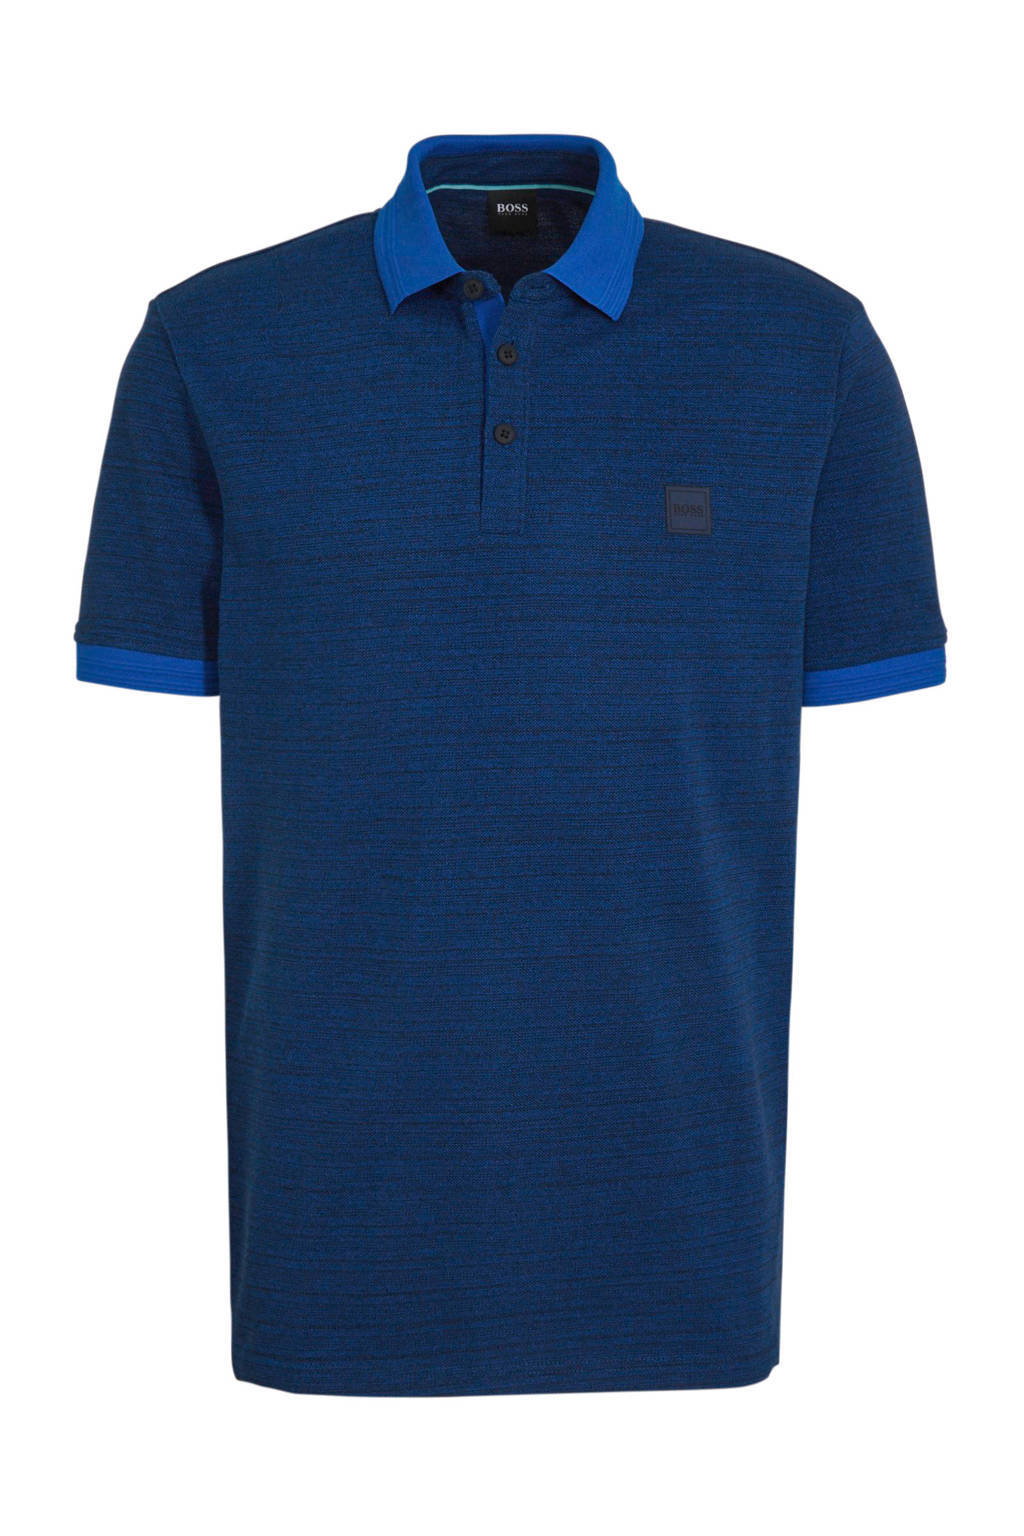 BOSS gemêleerde slim fit polo blauw, Blauw